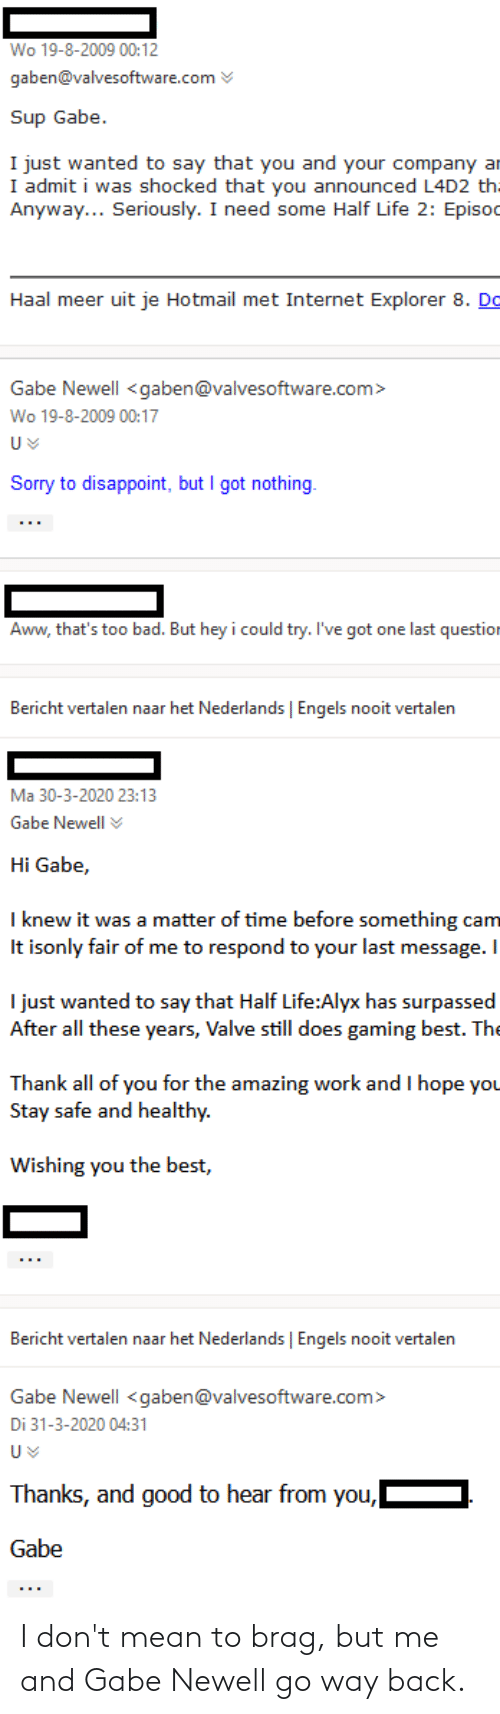 Gabe: I don't mean to brag, but me and Gabe Newell go way back.